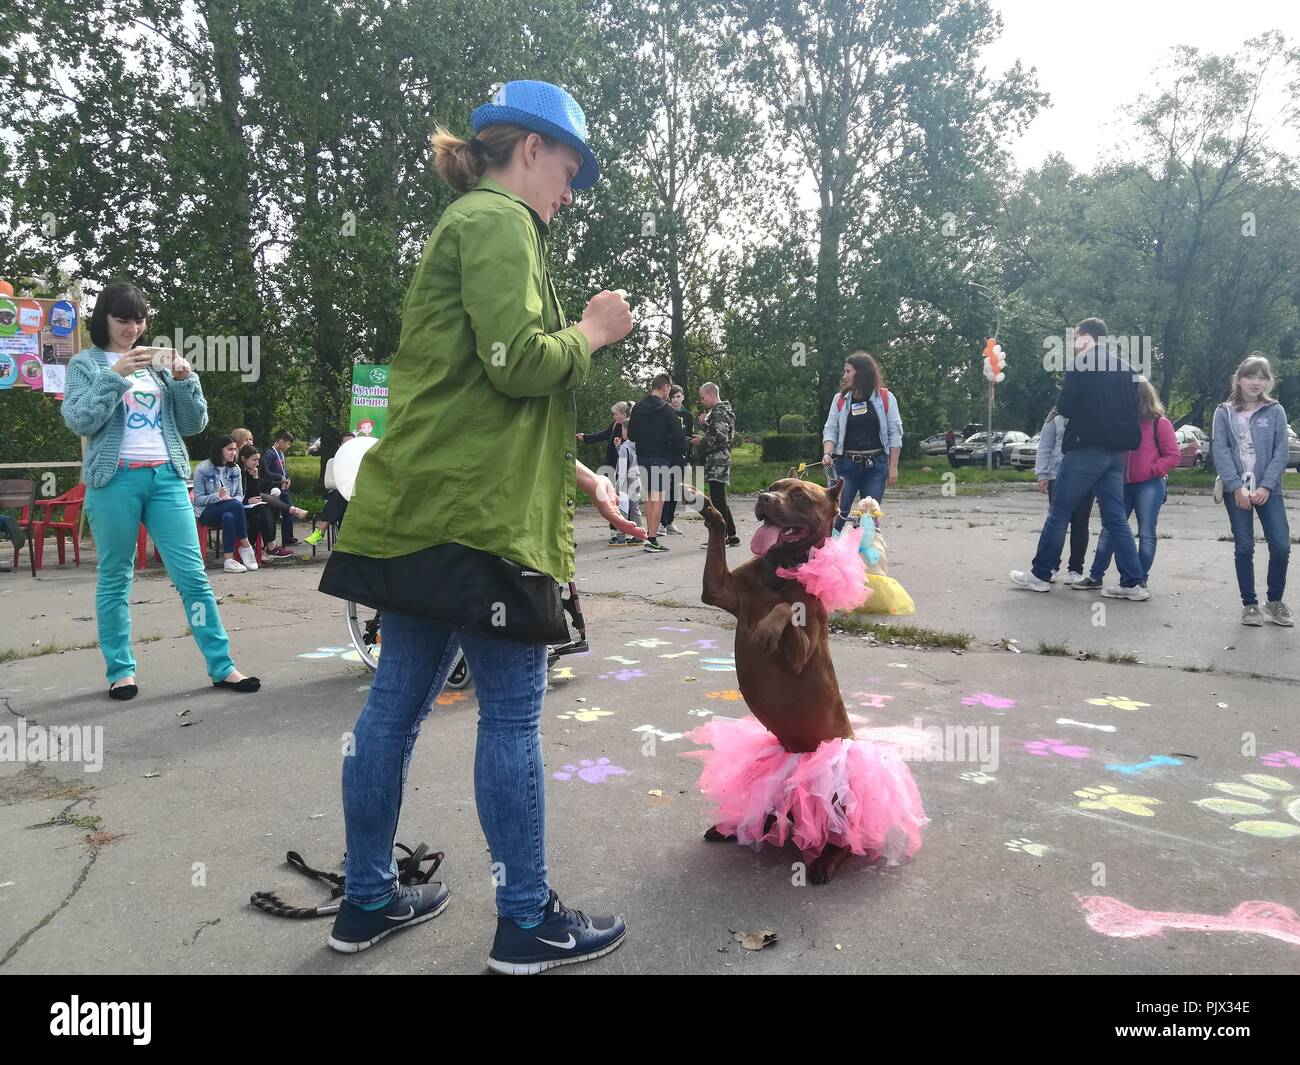 St.Petersburg, Russia. 9th September 2018. Costume Parade at the Pit Bull and Staffordshire Bull Terrier dog show in Aviators' Park at St.Petersburg, Russia Credit: Nastia M/Alamy Live News - Stock Image